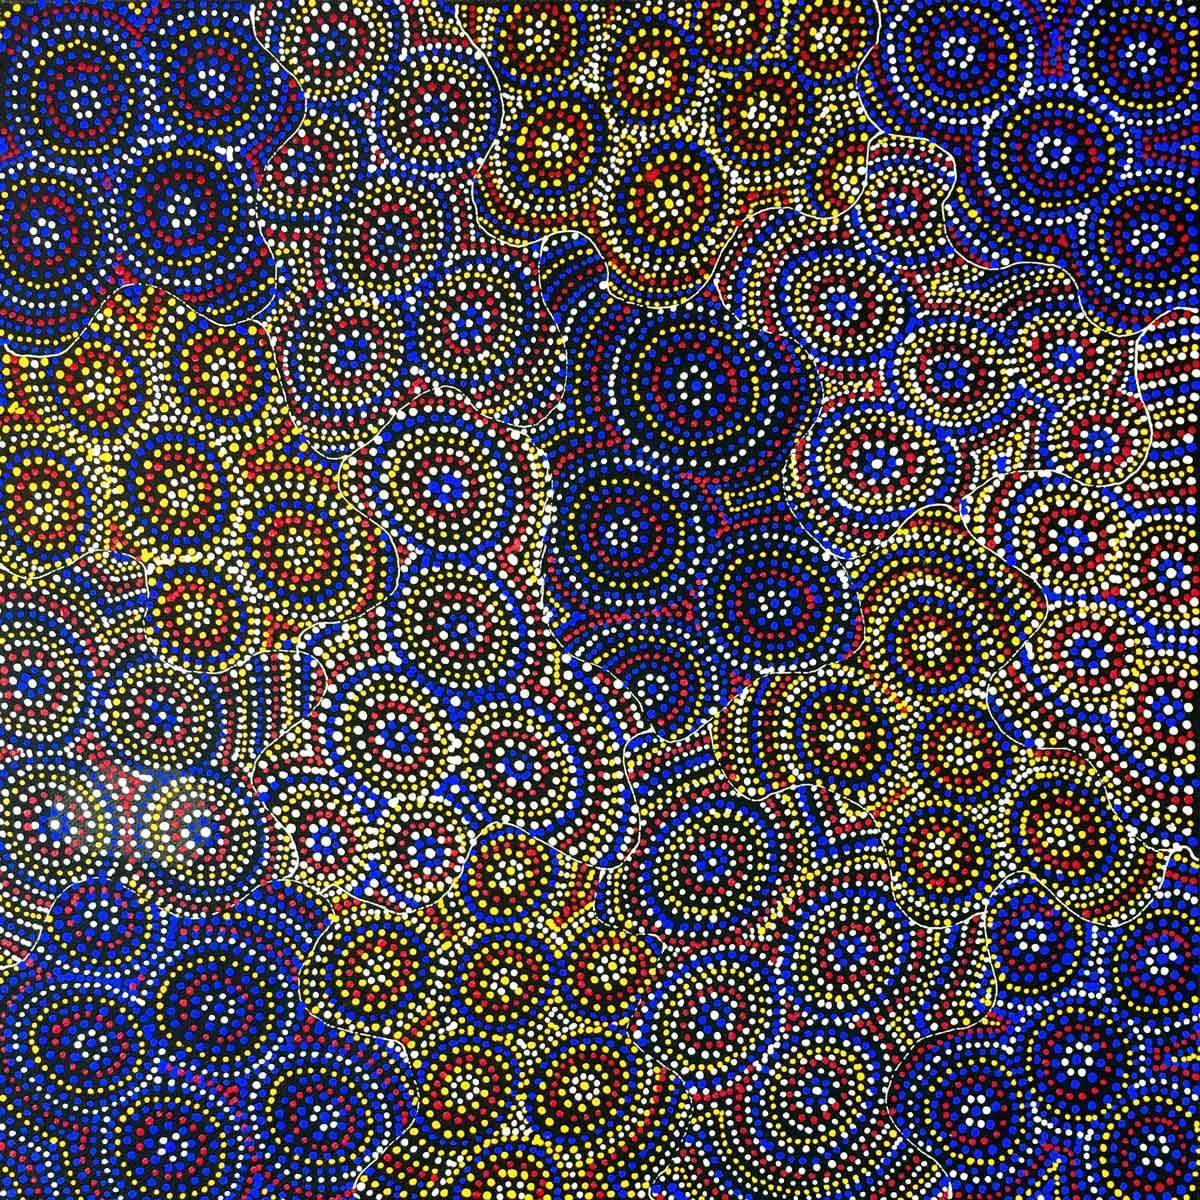 Nteny Ngkwarl by Annie Hunter Petyarre. Australian Aboriginal Art.